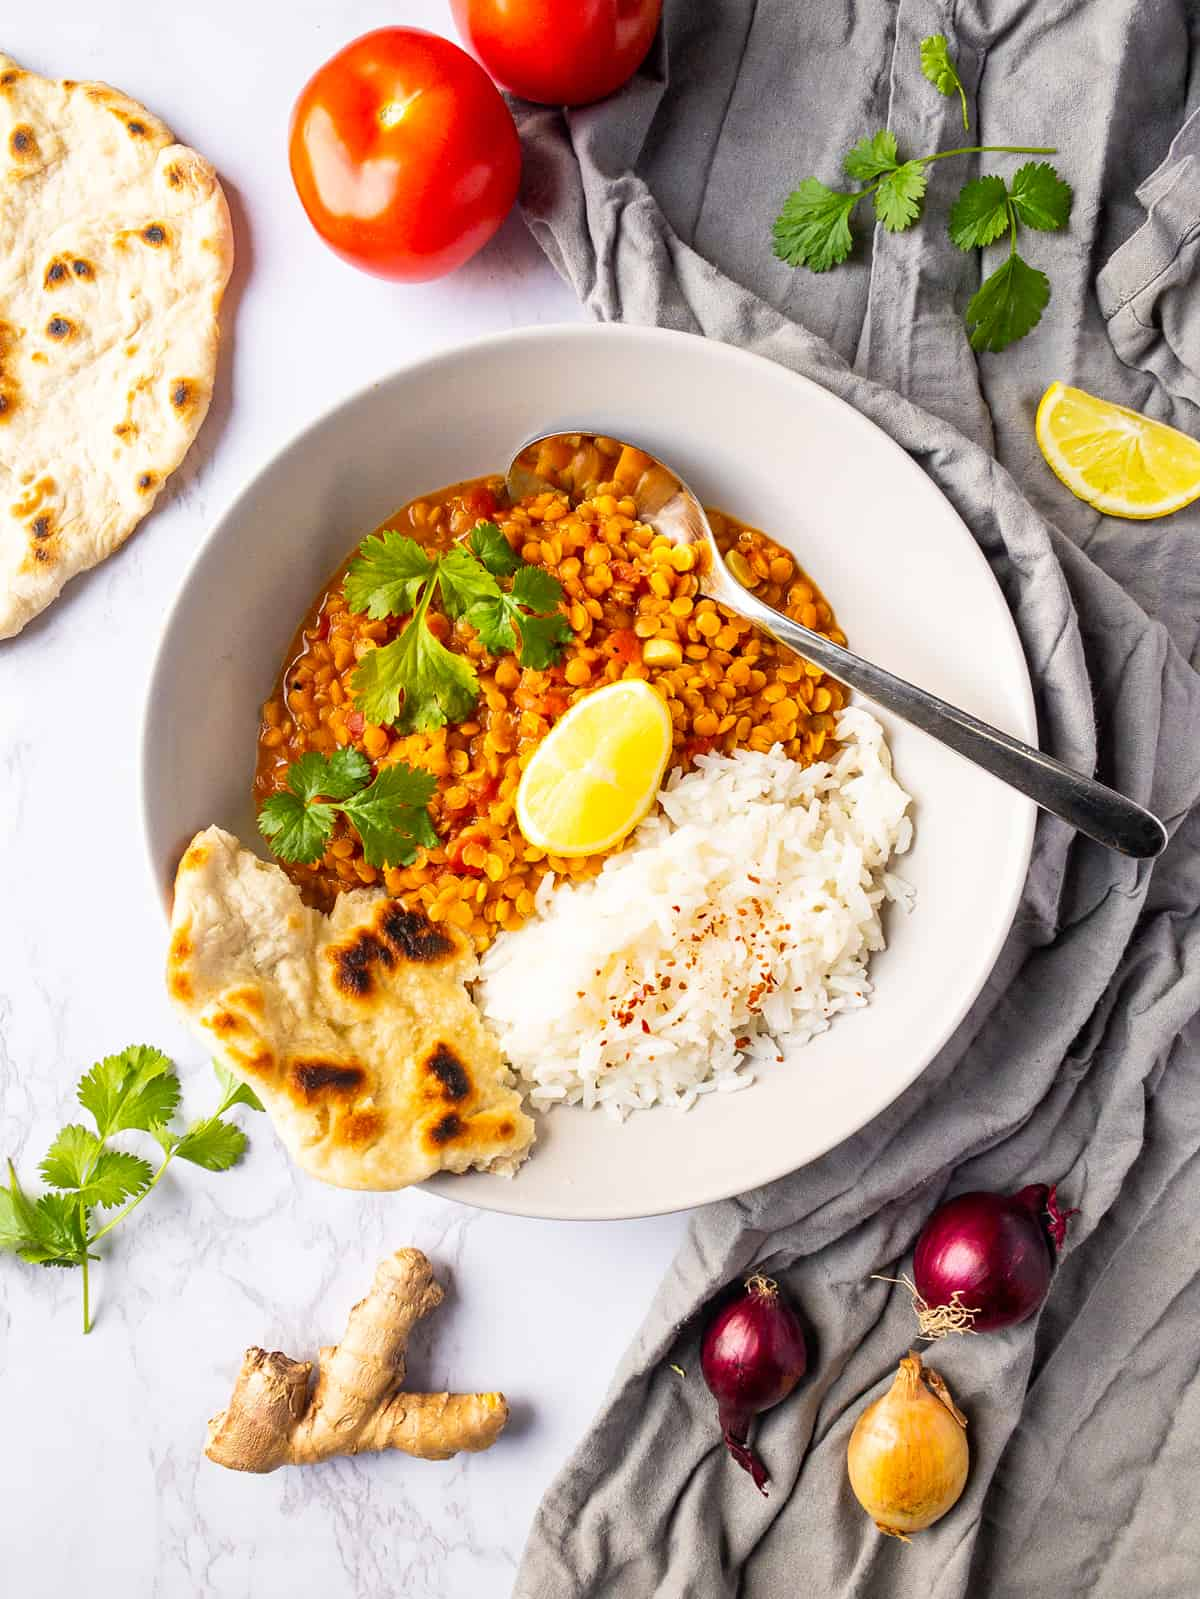 red lentil dal in a white bowl with rice and naan bread on the side